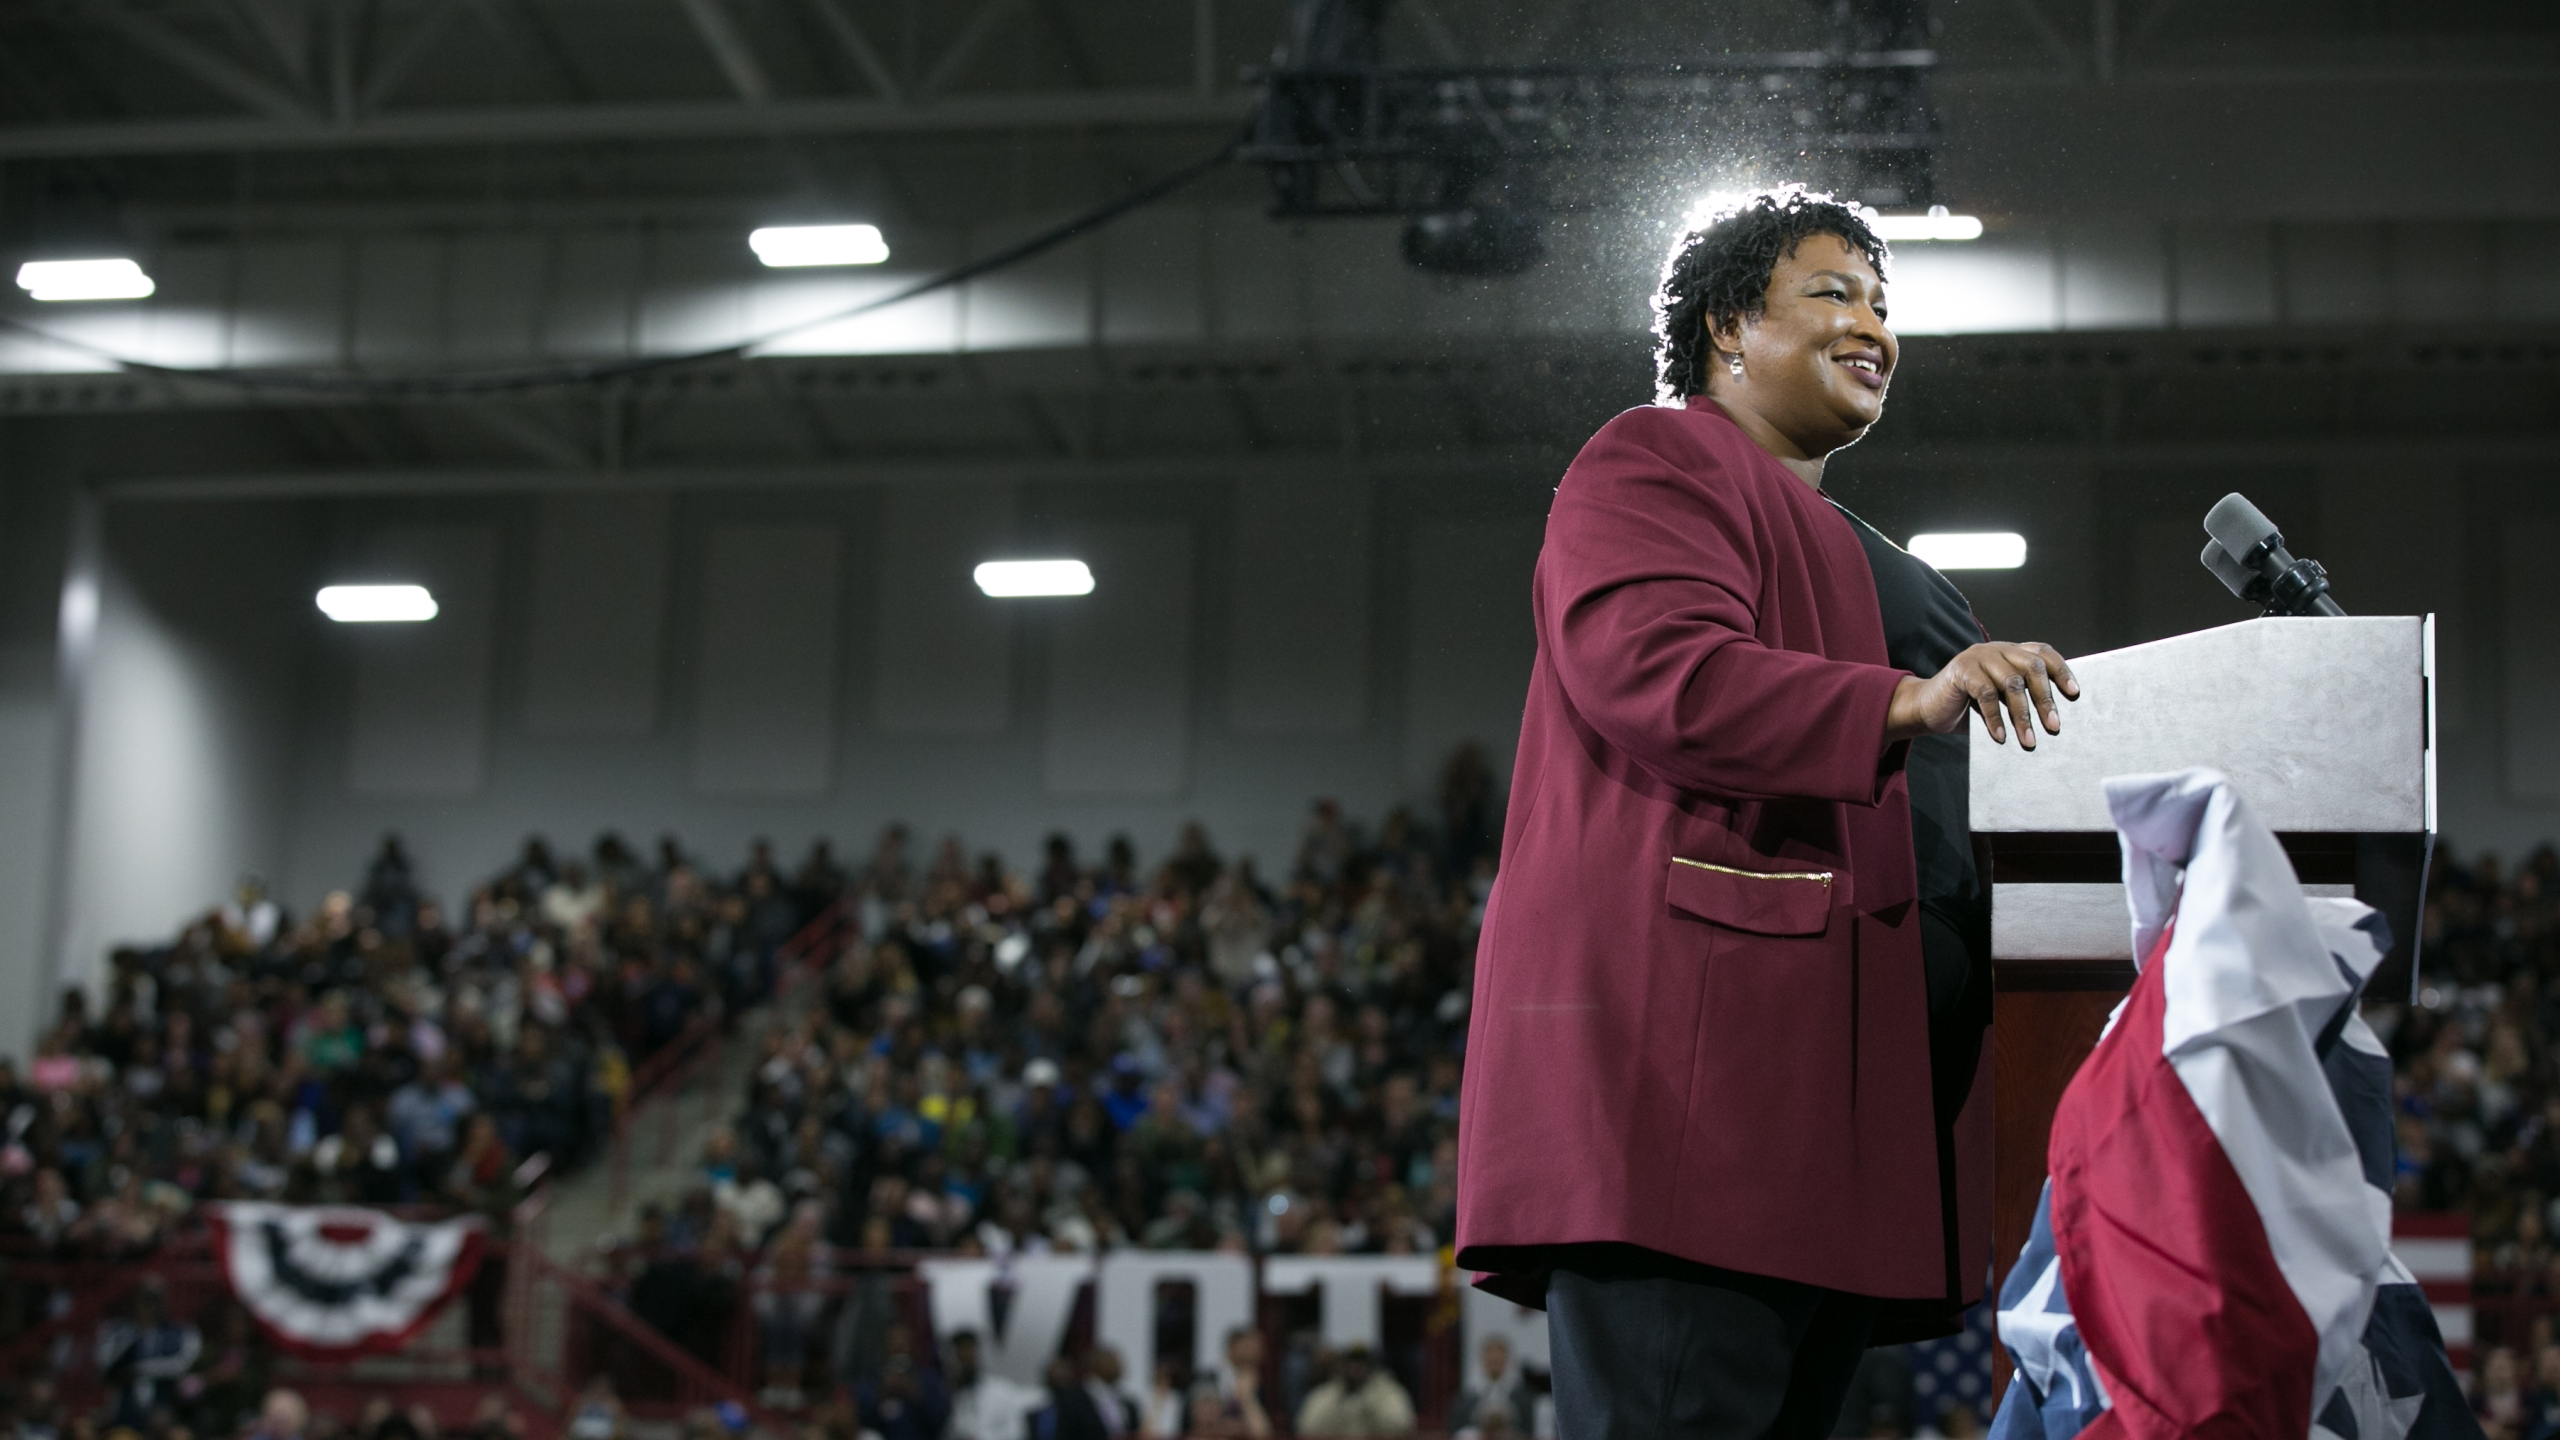 Georgia Democratic Gubernatorial candidate Stacey Abrams gives a speech to the crowd gathered for a campaign rally with former President Barack Obama at Morehouse College in Atlanta on Nov. 2, 2018. (Credit: Jessica McGowan / Getty Images)